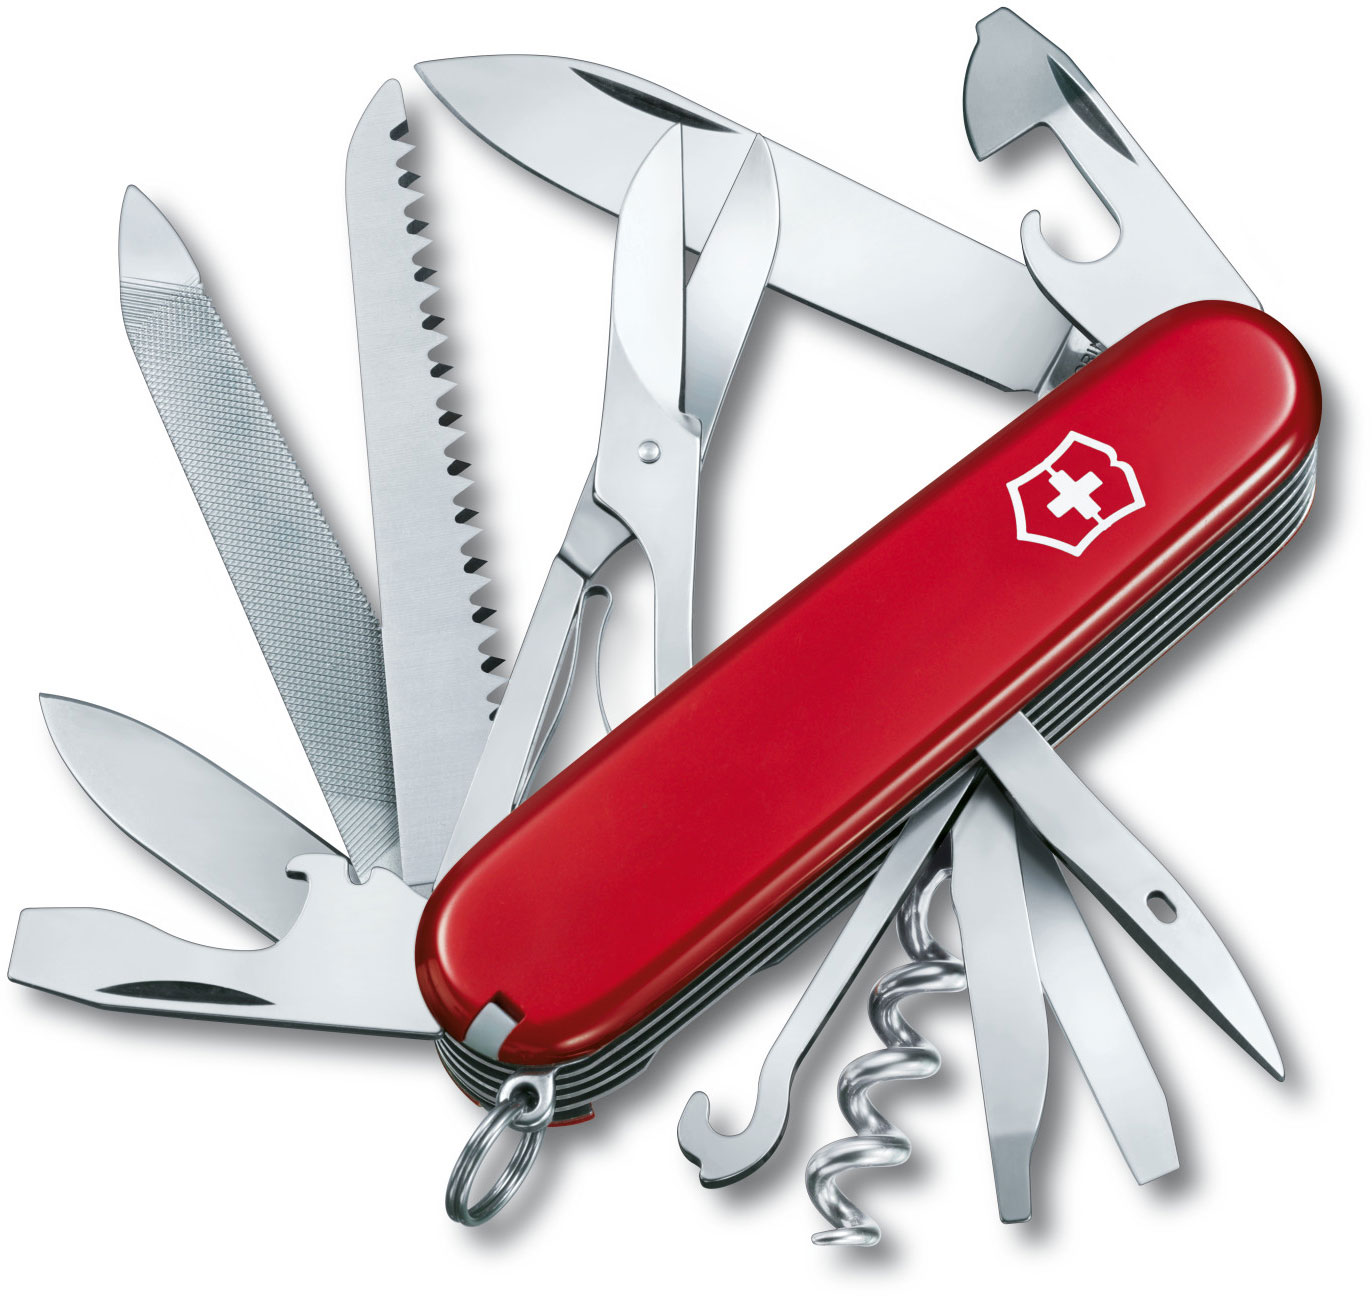 Victorinox Swiss Army Ranger Multi-Tool, Red, 3.58 inch Closed